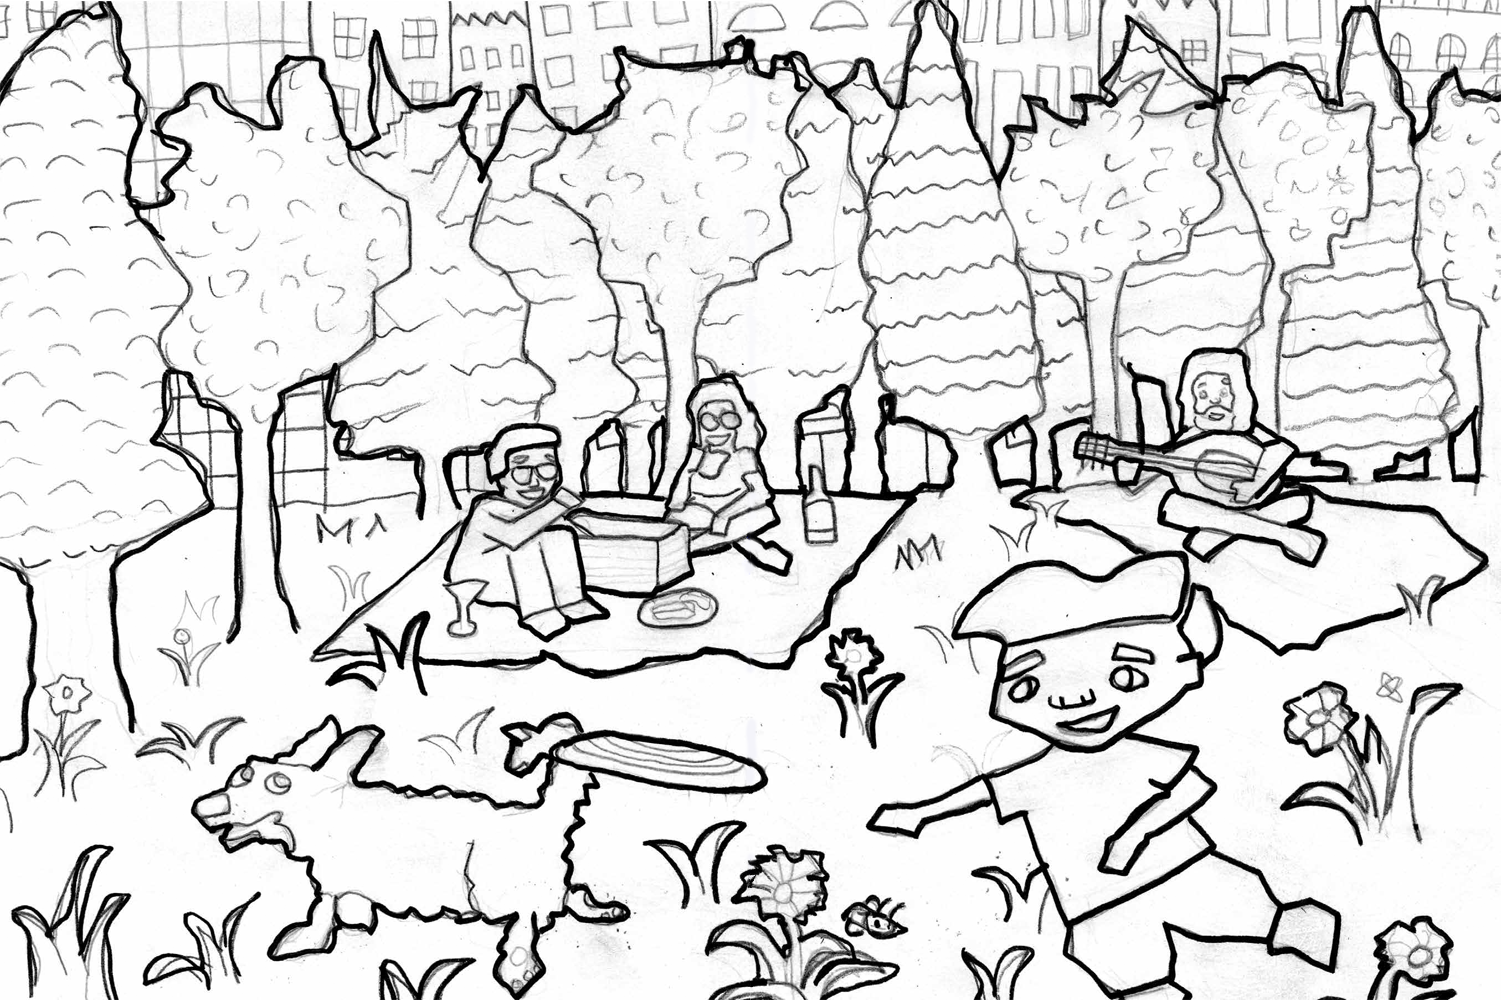 coloring book parkpg.png